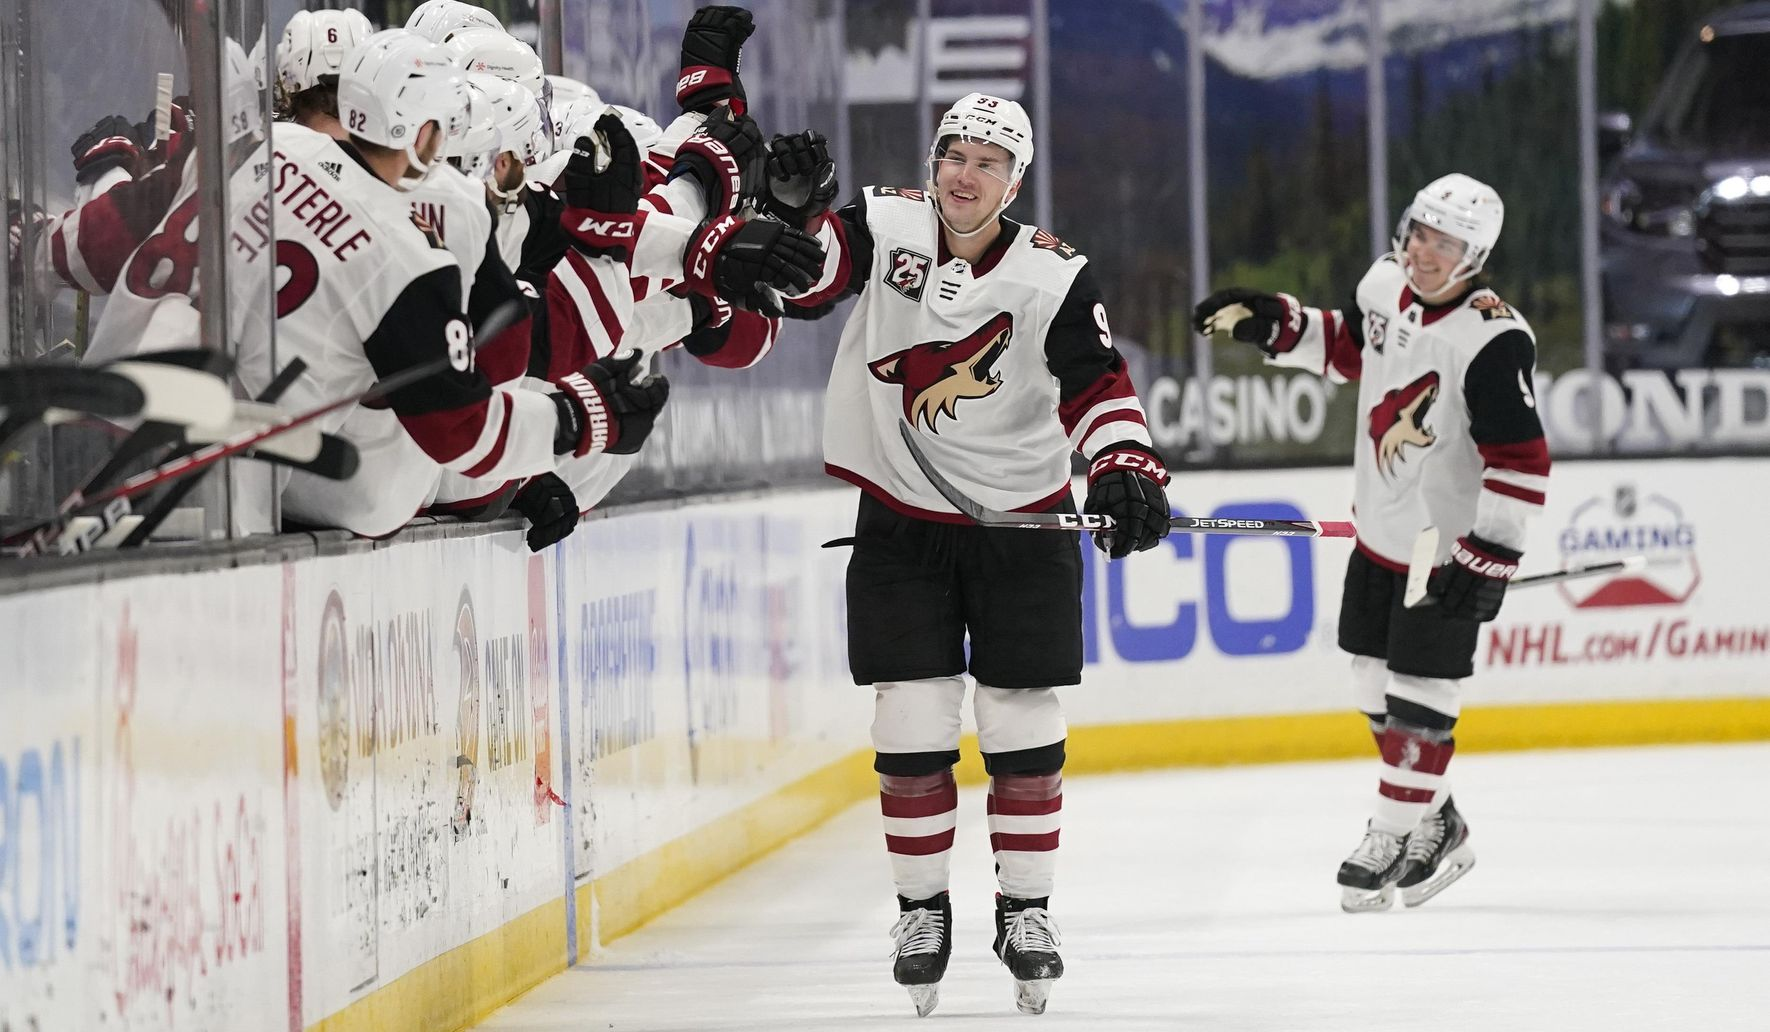 Kessel, Pederson rally Coyotes to 4-2 victory over Ducks